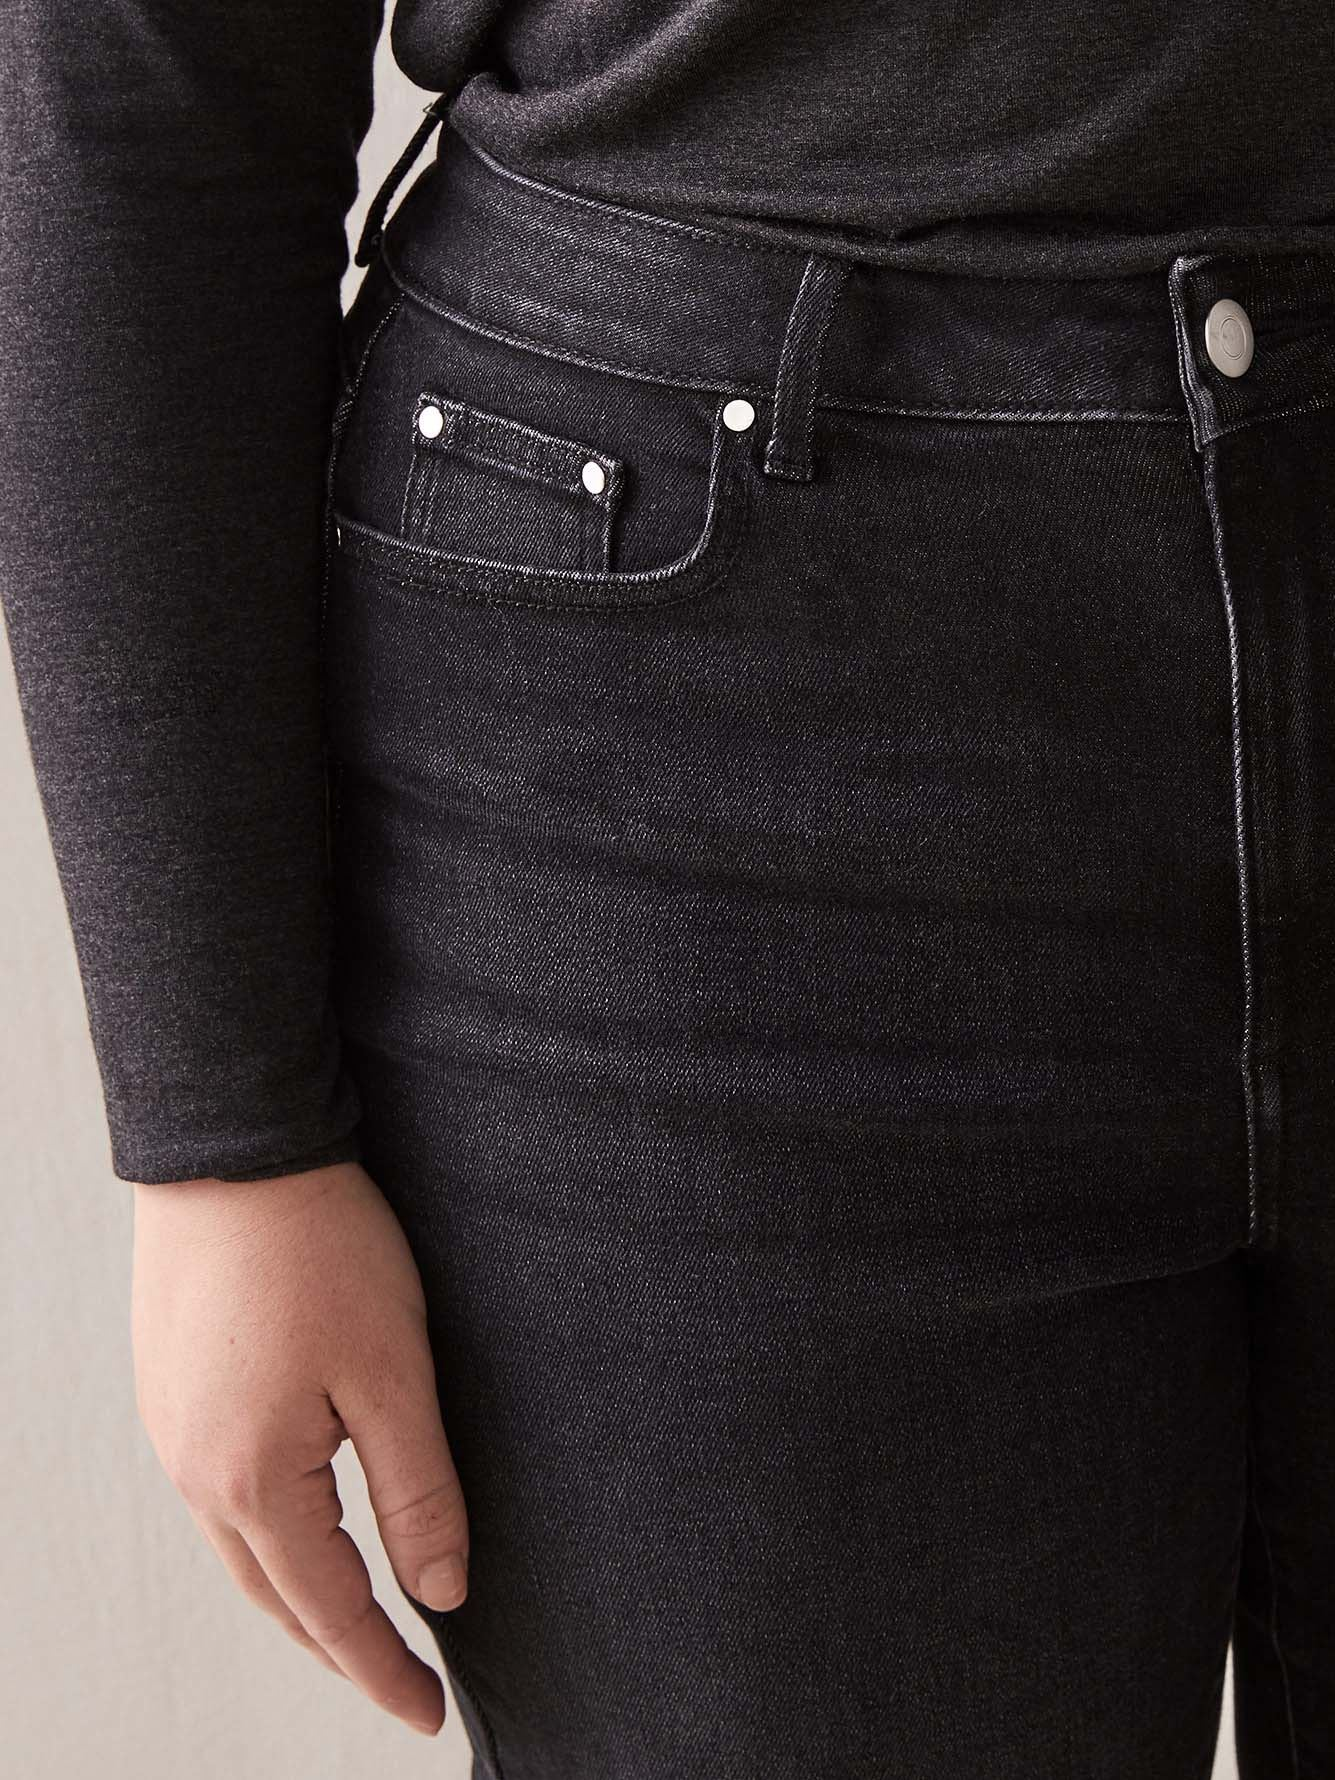 Cropped Staggered Hem Jean - Addition Elle